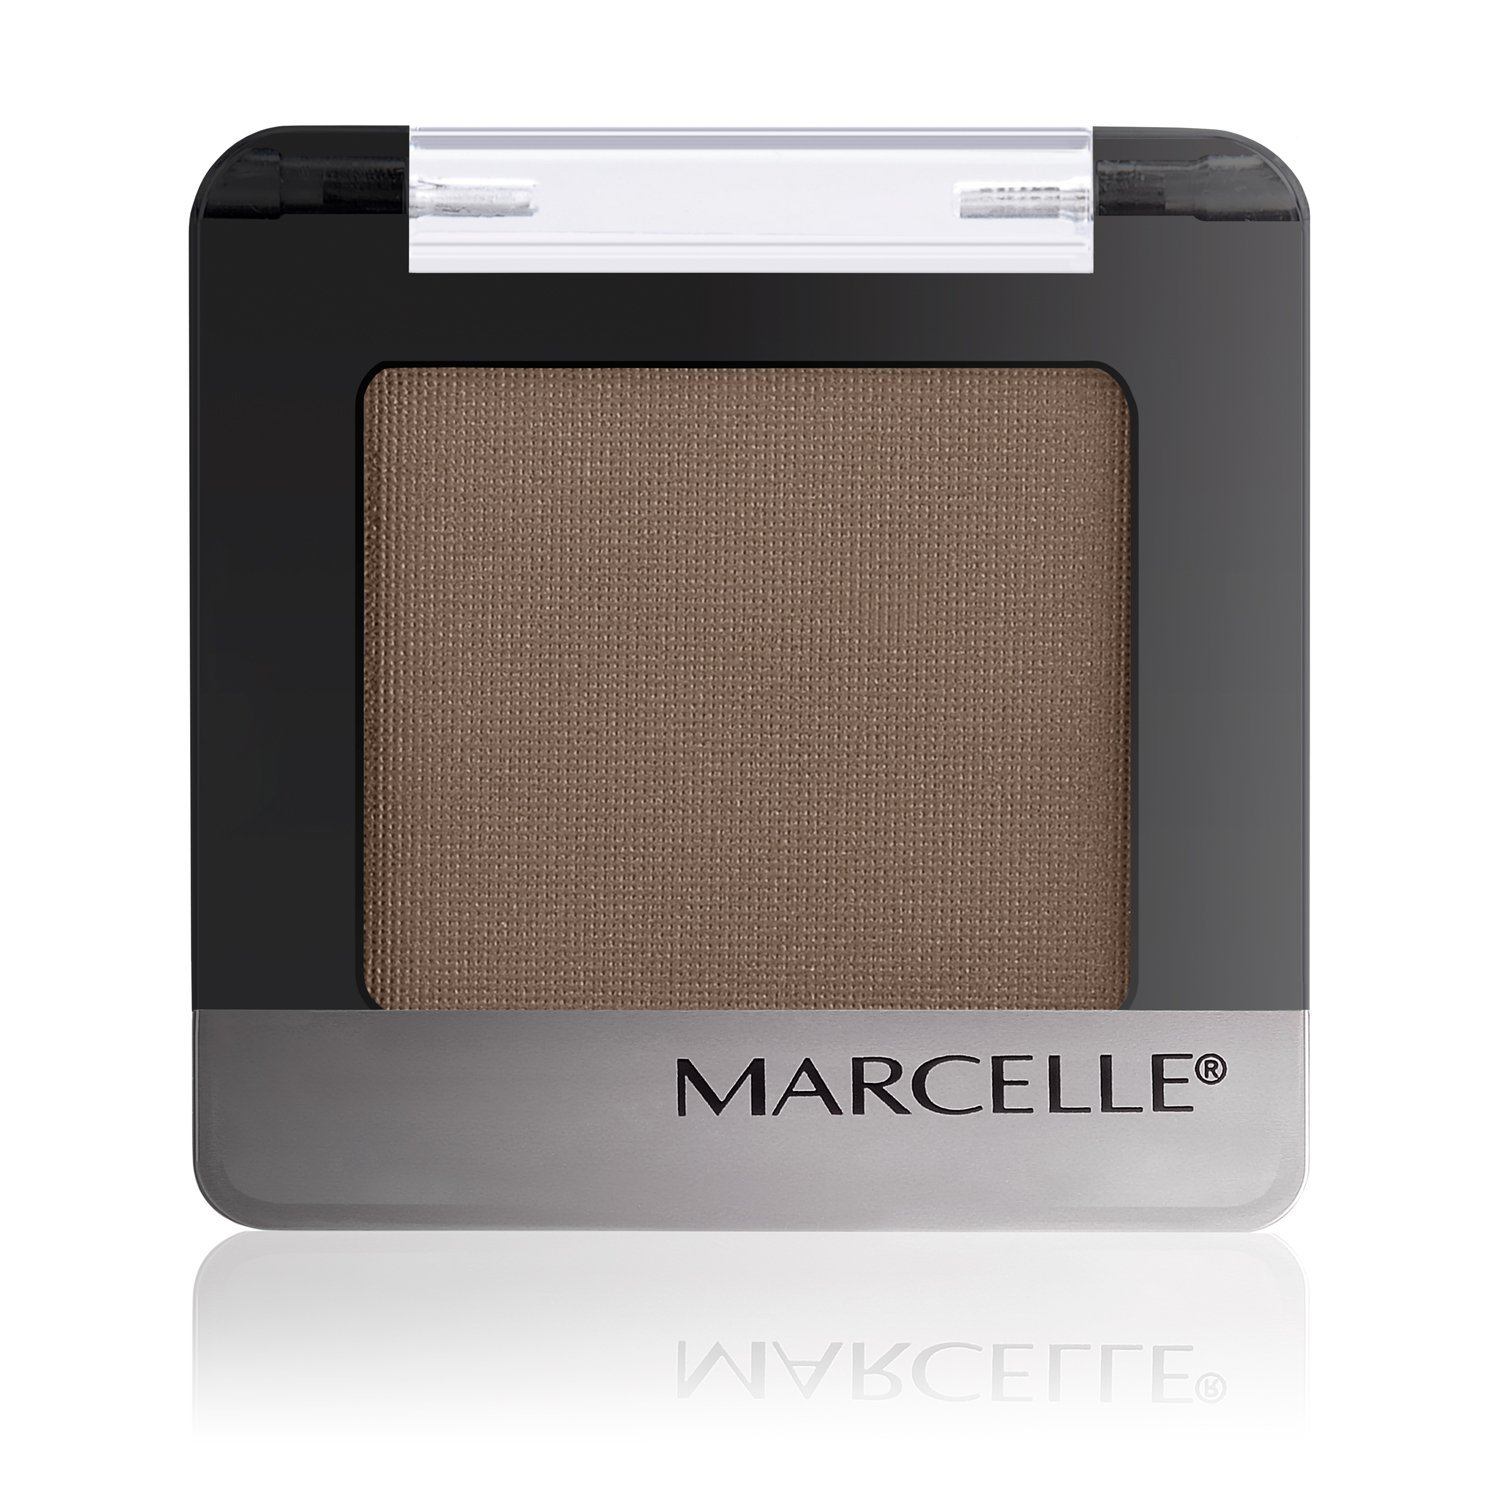 Marcelle Mono Eyeshadow, Truth or Taupe, Hypoallergenic and Fragrance-Free, 2.5 g Groupe Marcelle Inc.